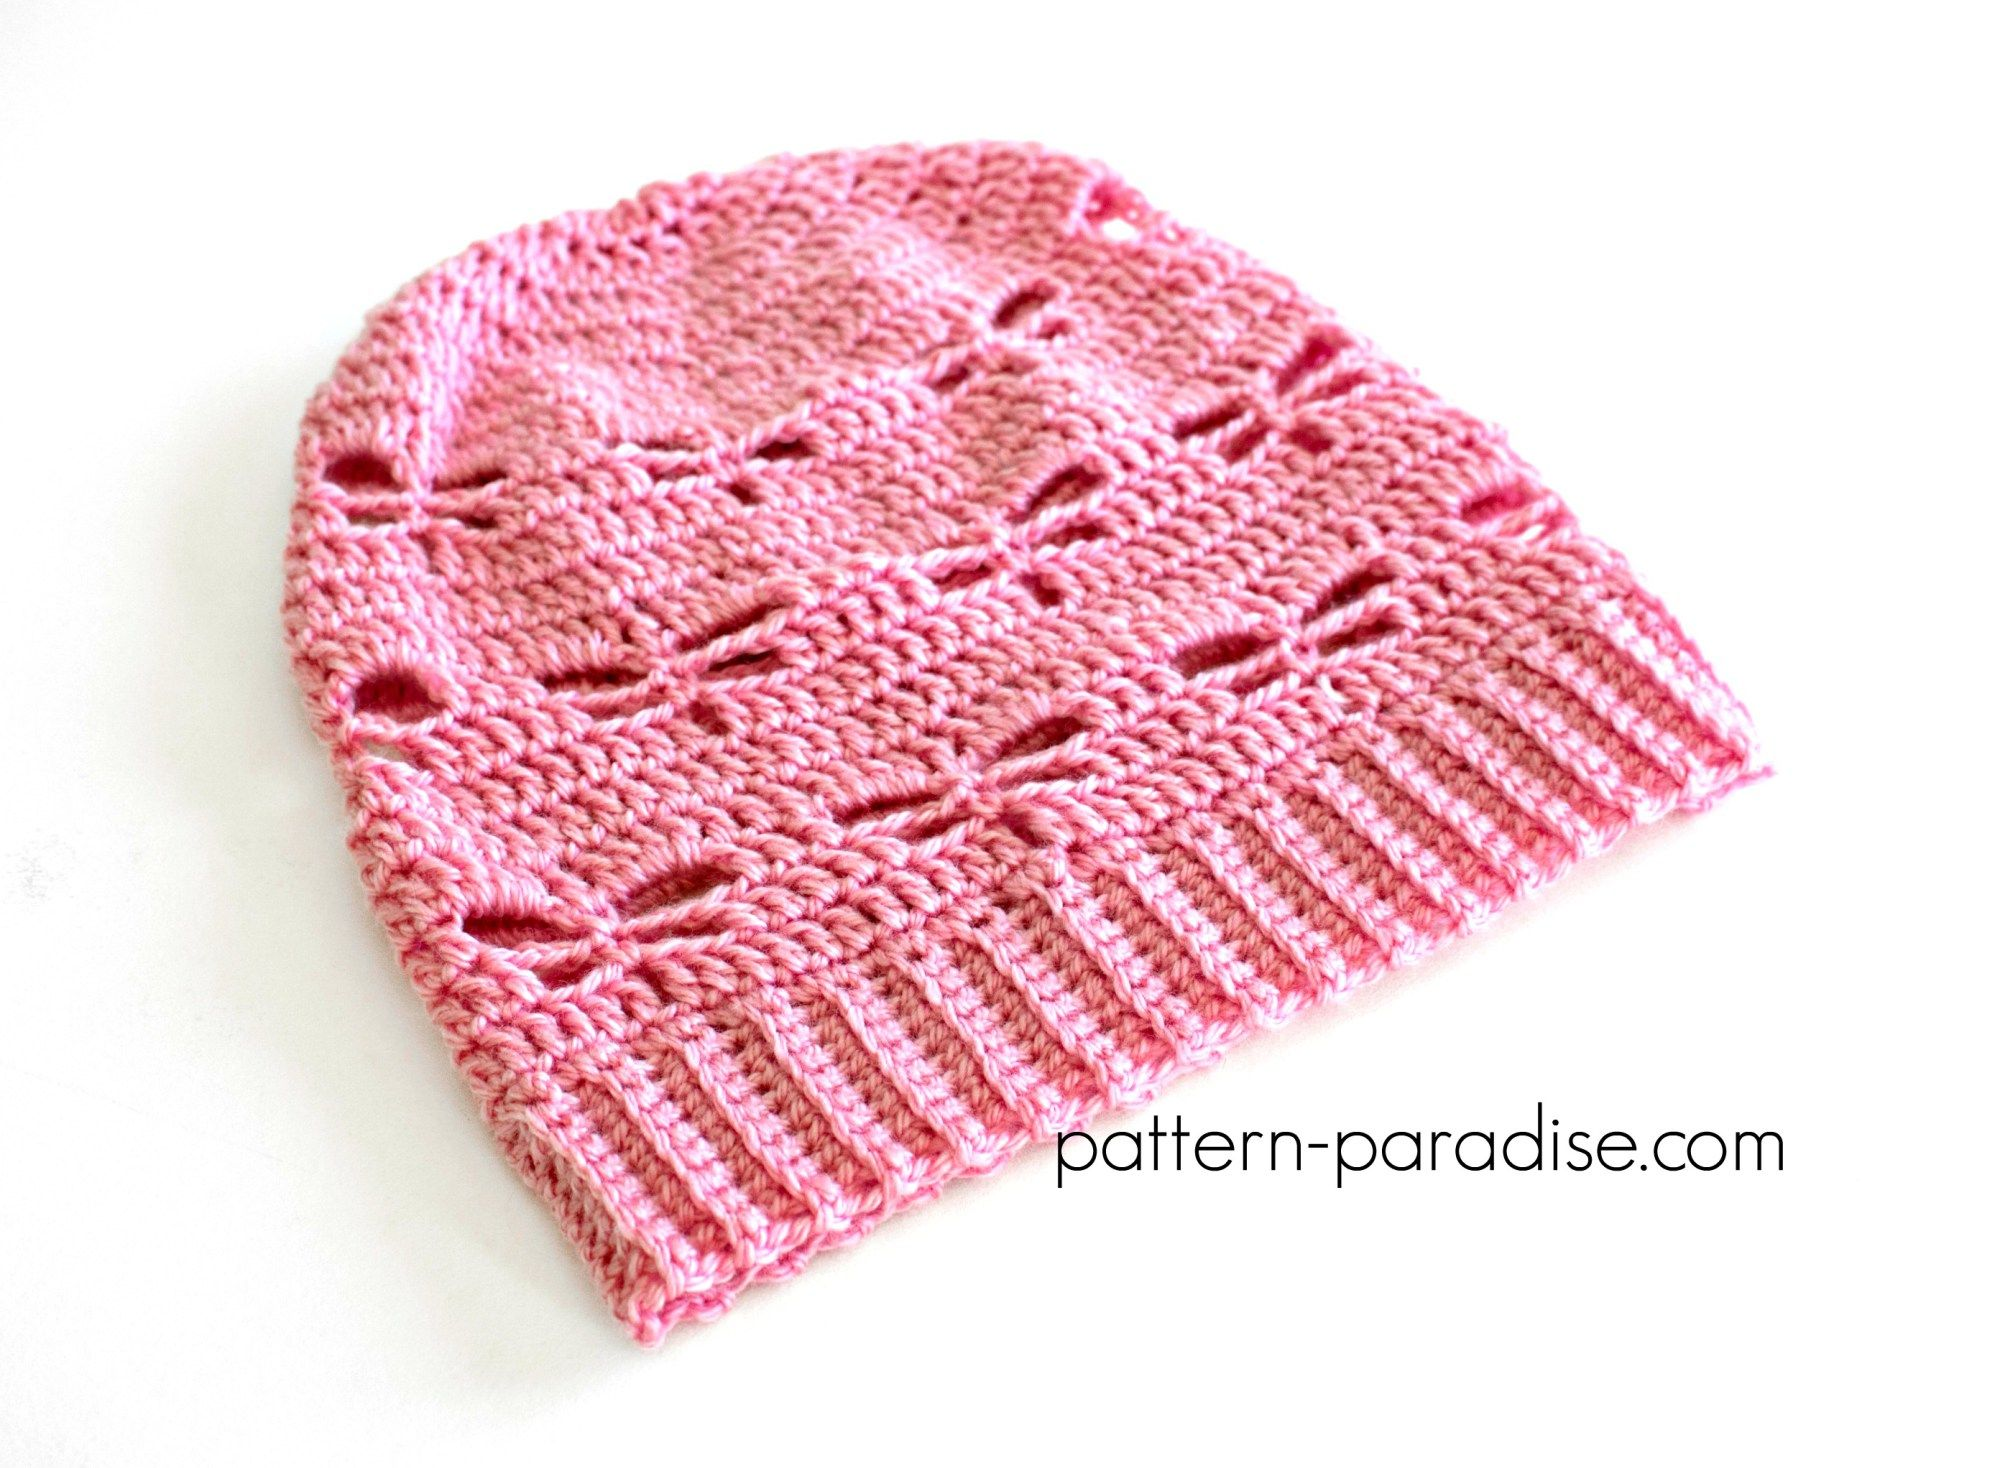 ebc816cdc39 Free crochet pattern for Dragonfly Slouchy hat designed by pattern-paradise.com   crochet